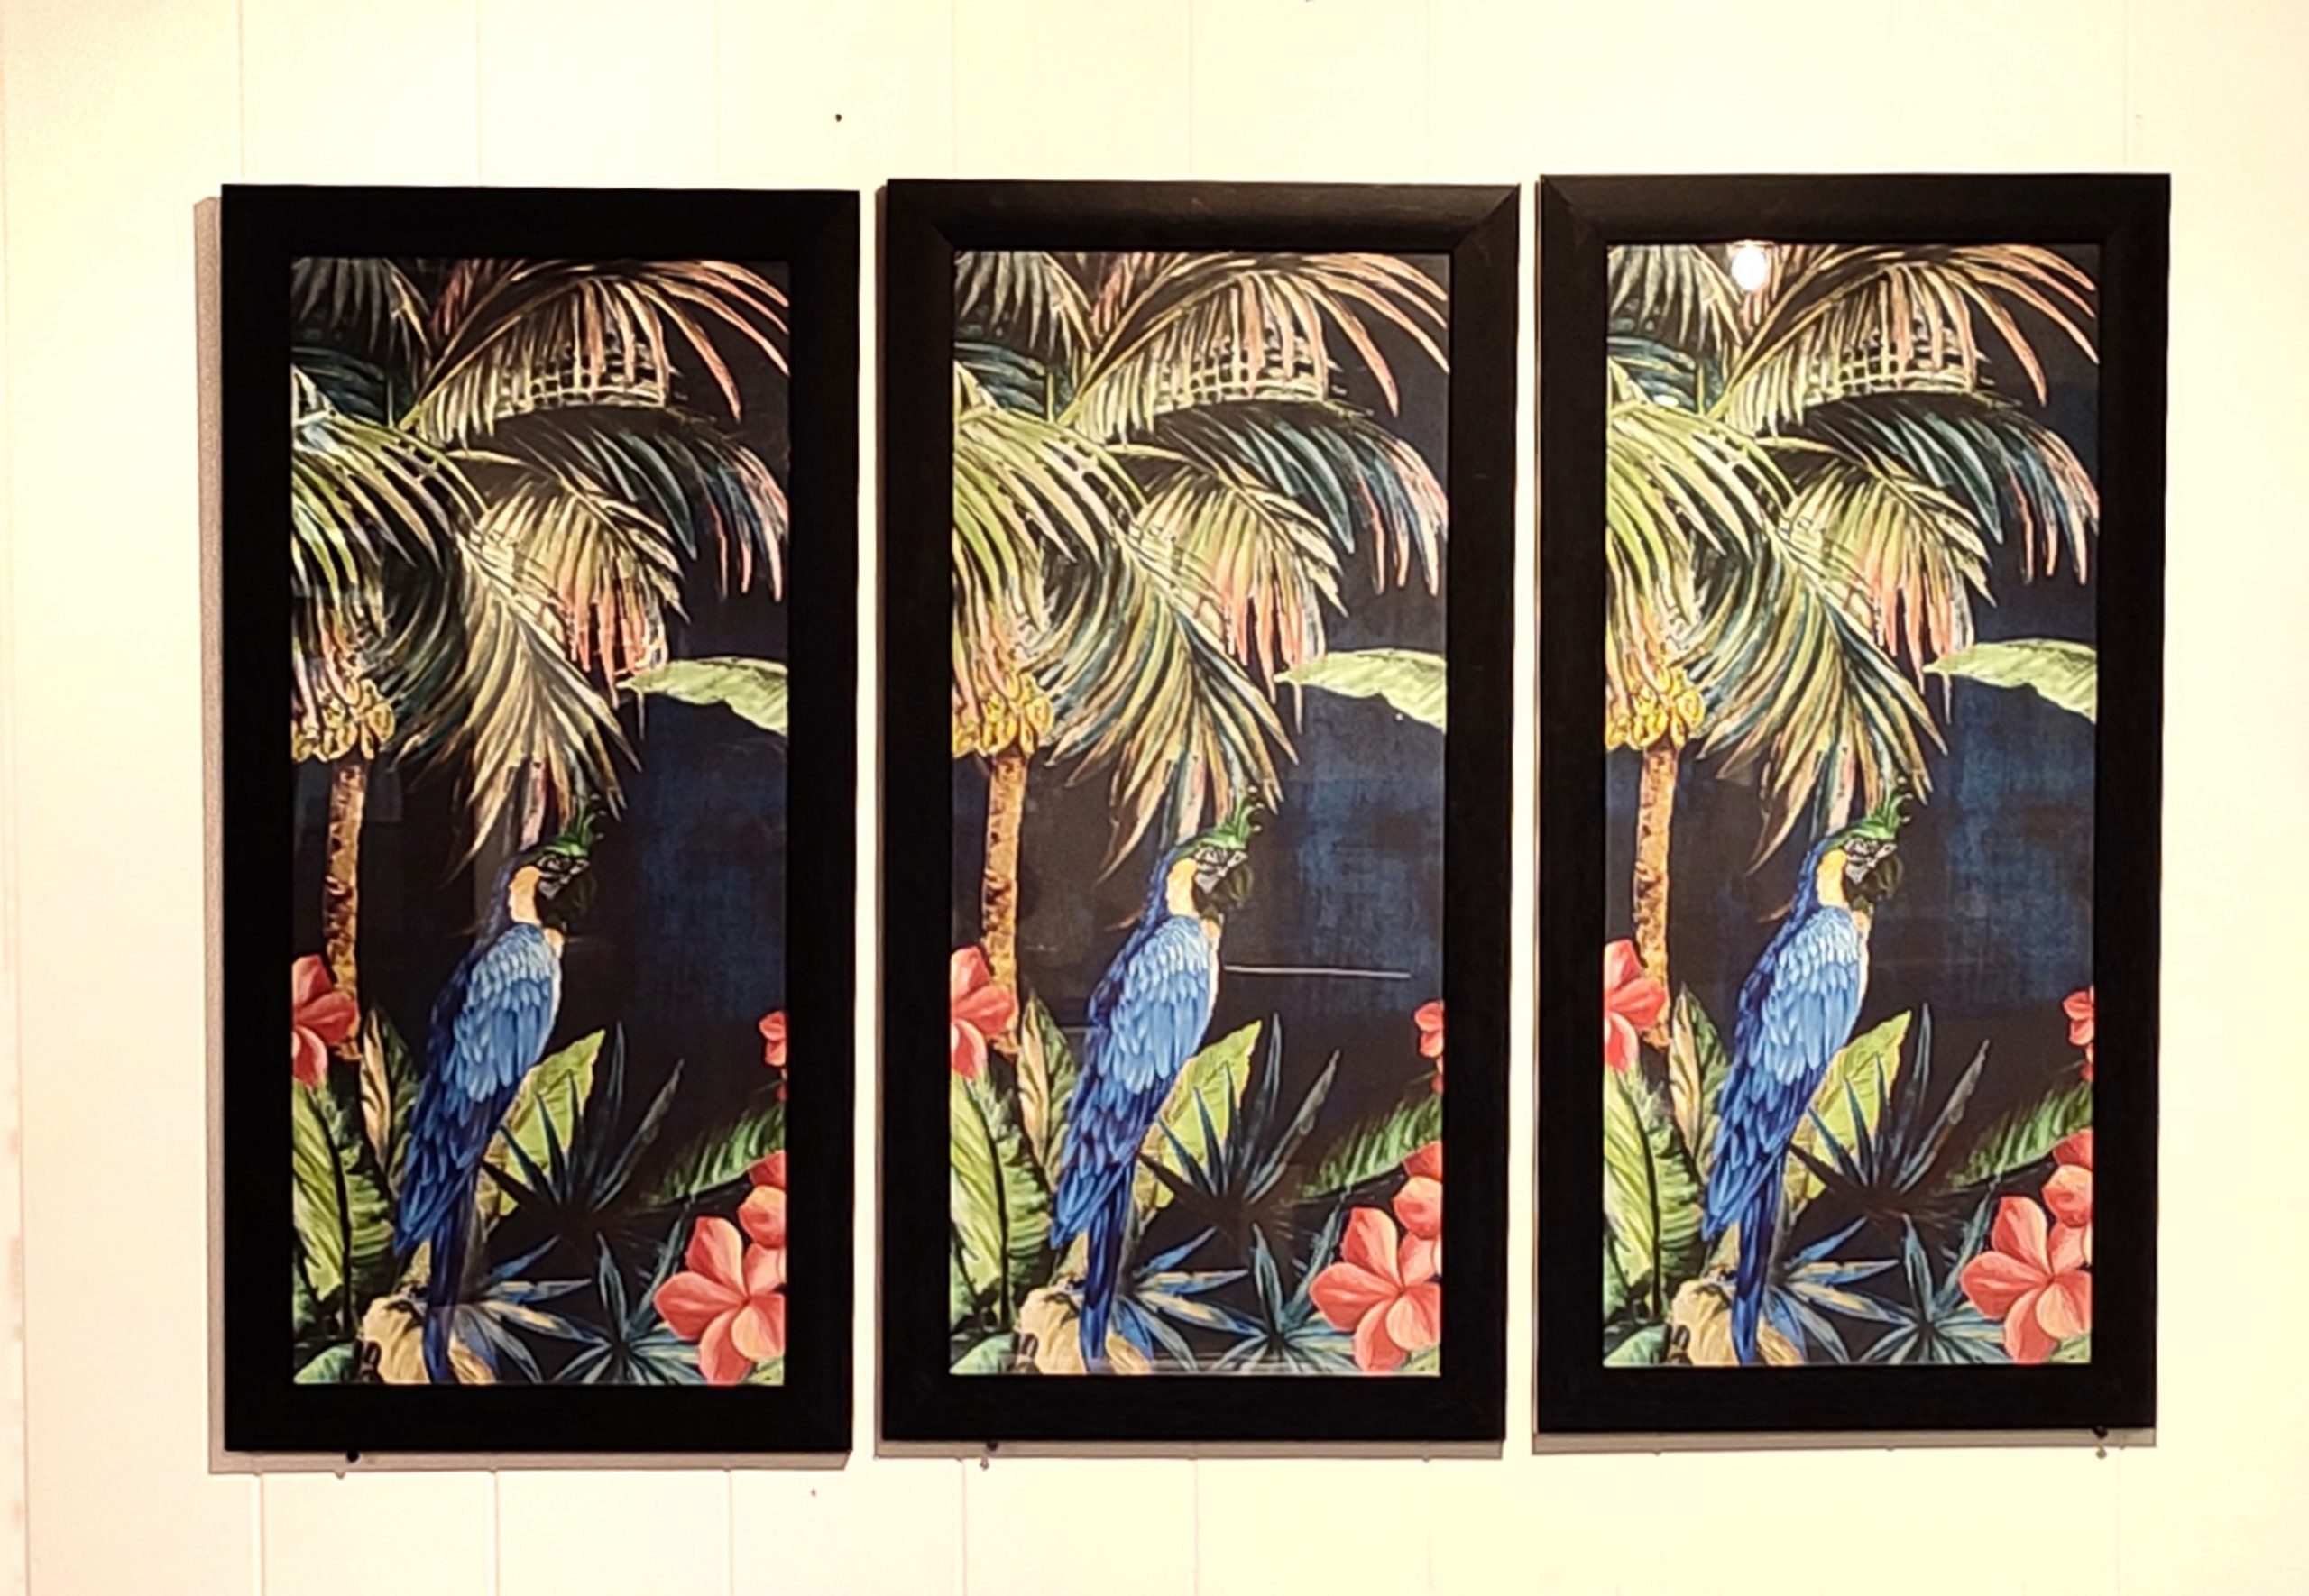 Parrot Painting Frames on the Wall